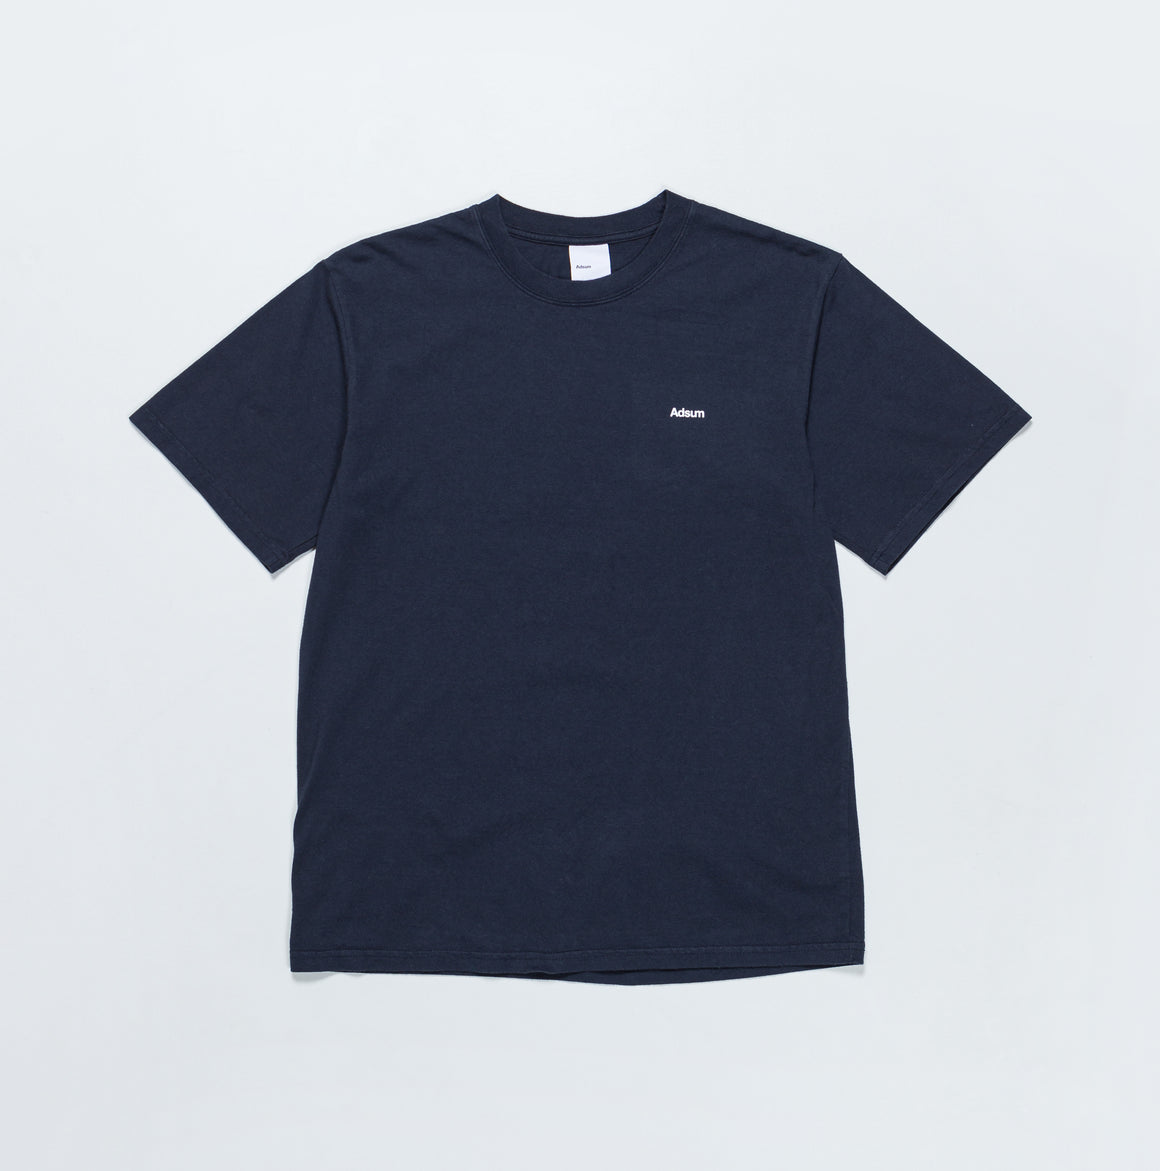 Adsum - Core Logo Tee - Dark Navy - Up There